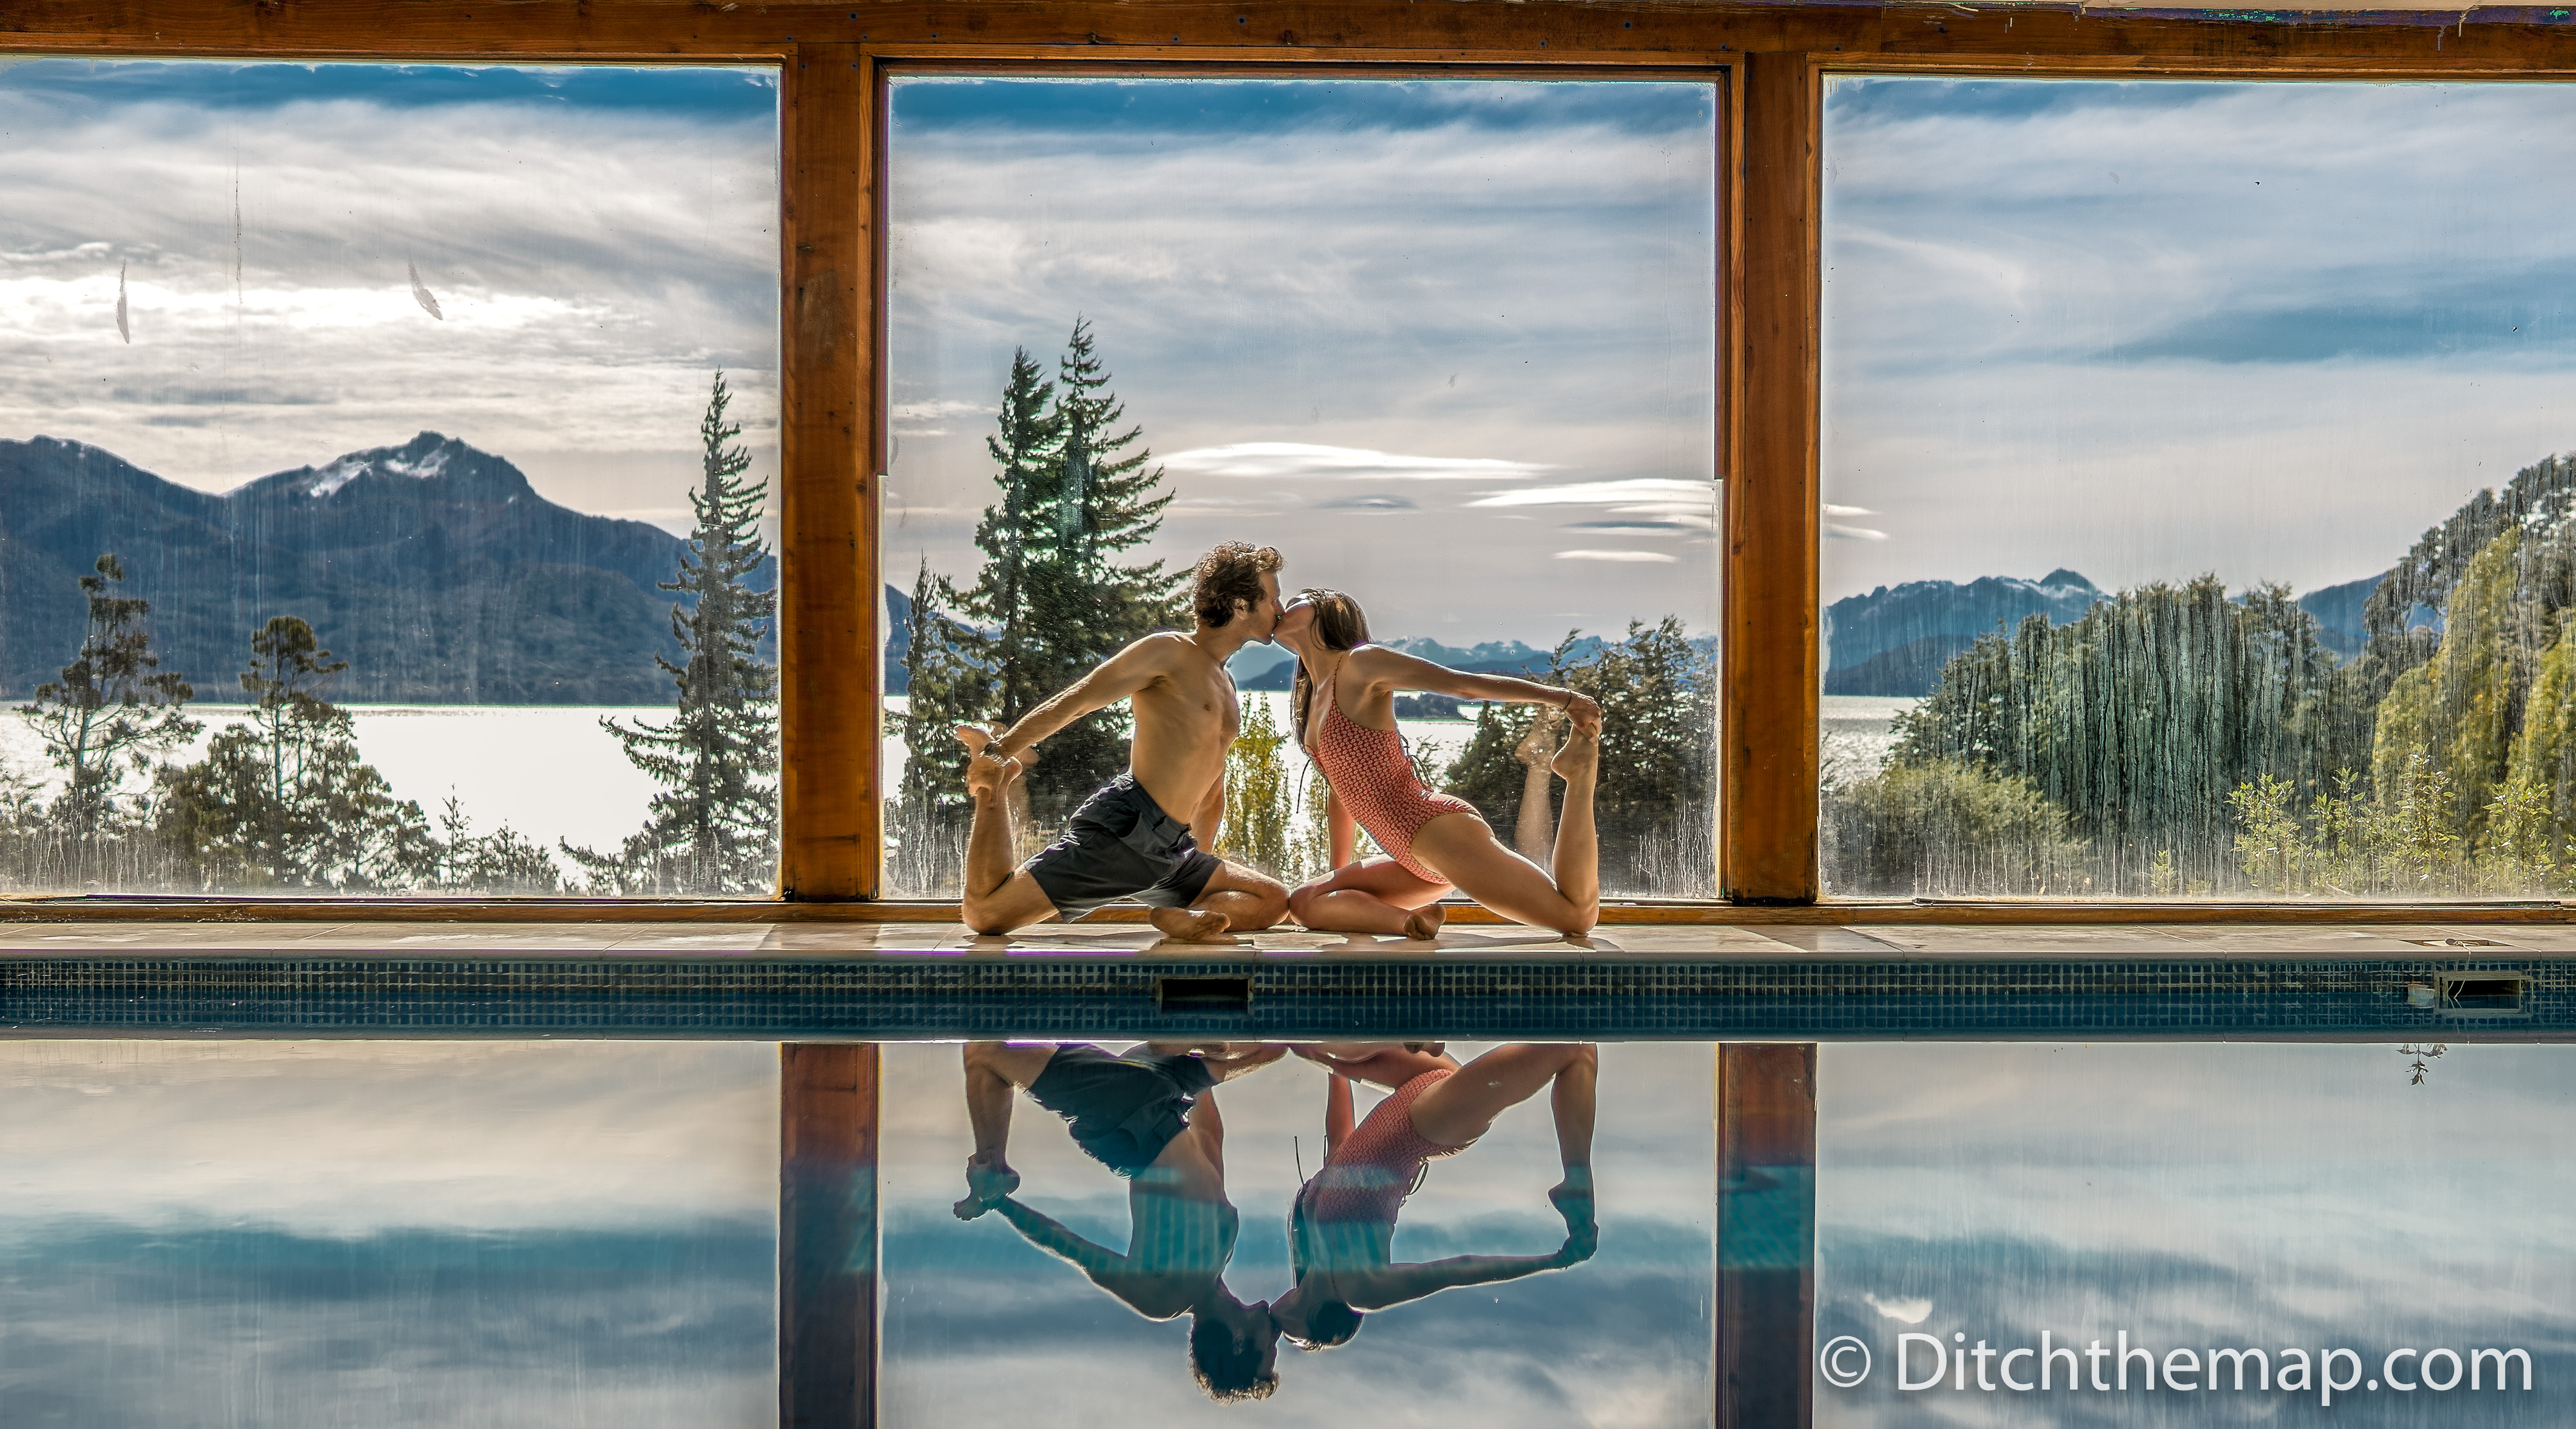 A man and a woman kissing while in a yoga pose next to a pool with a mountain landscape